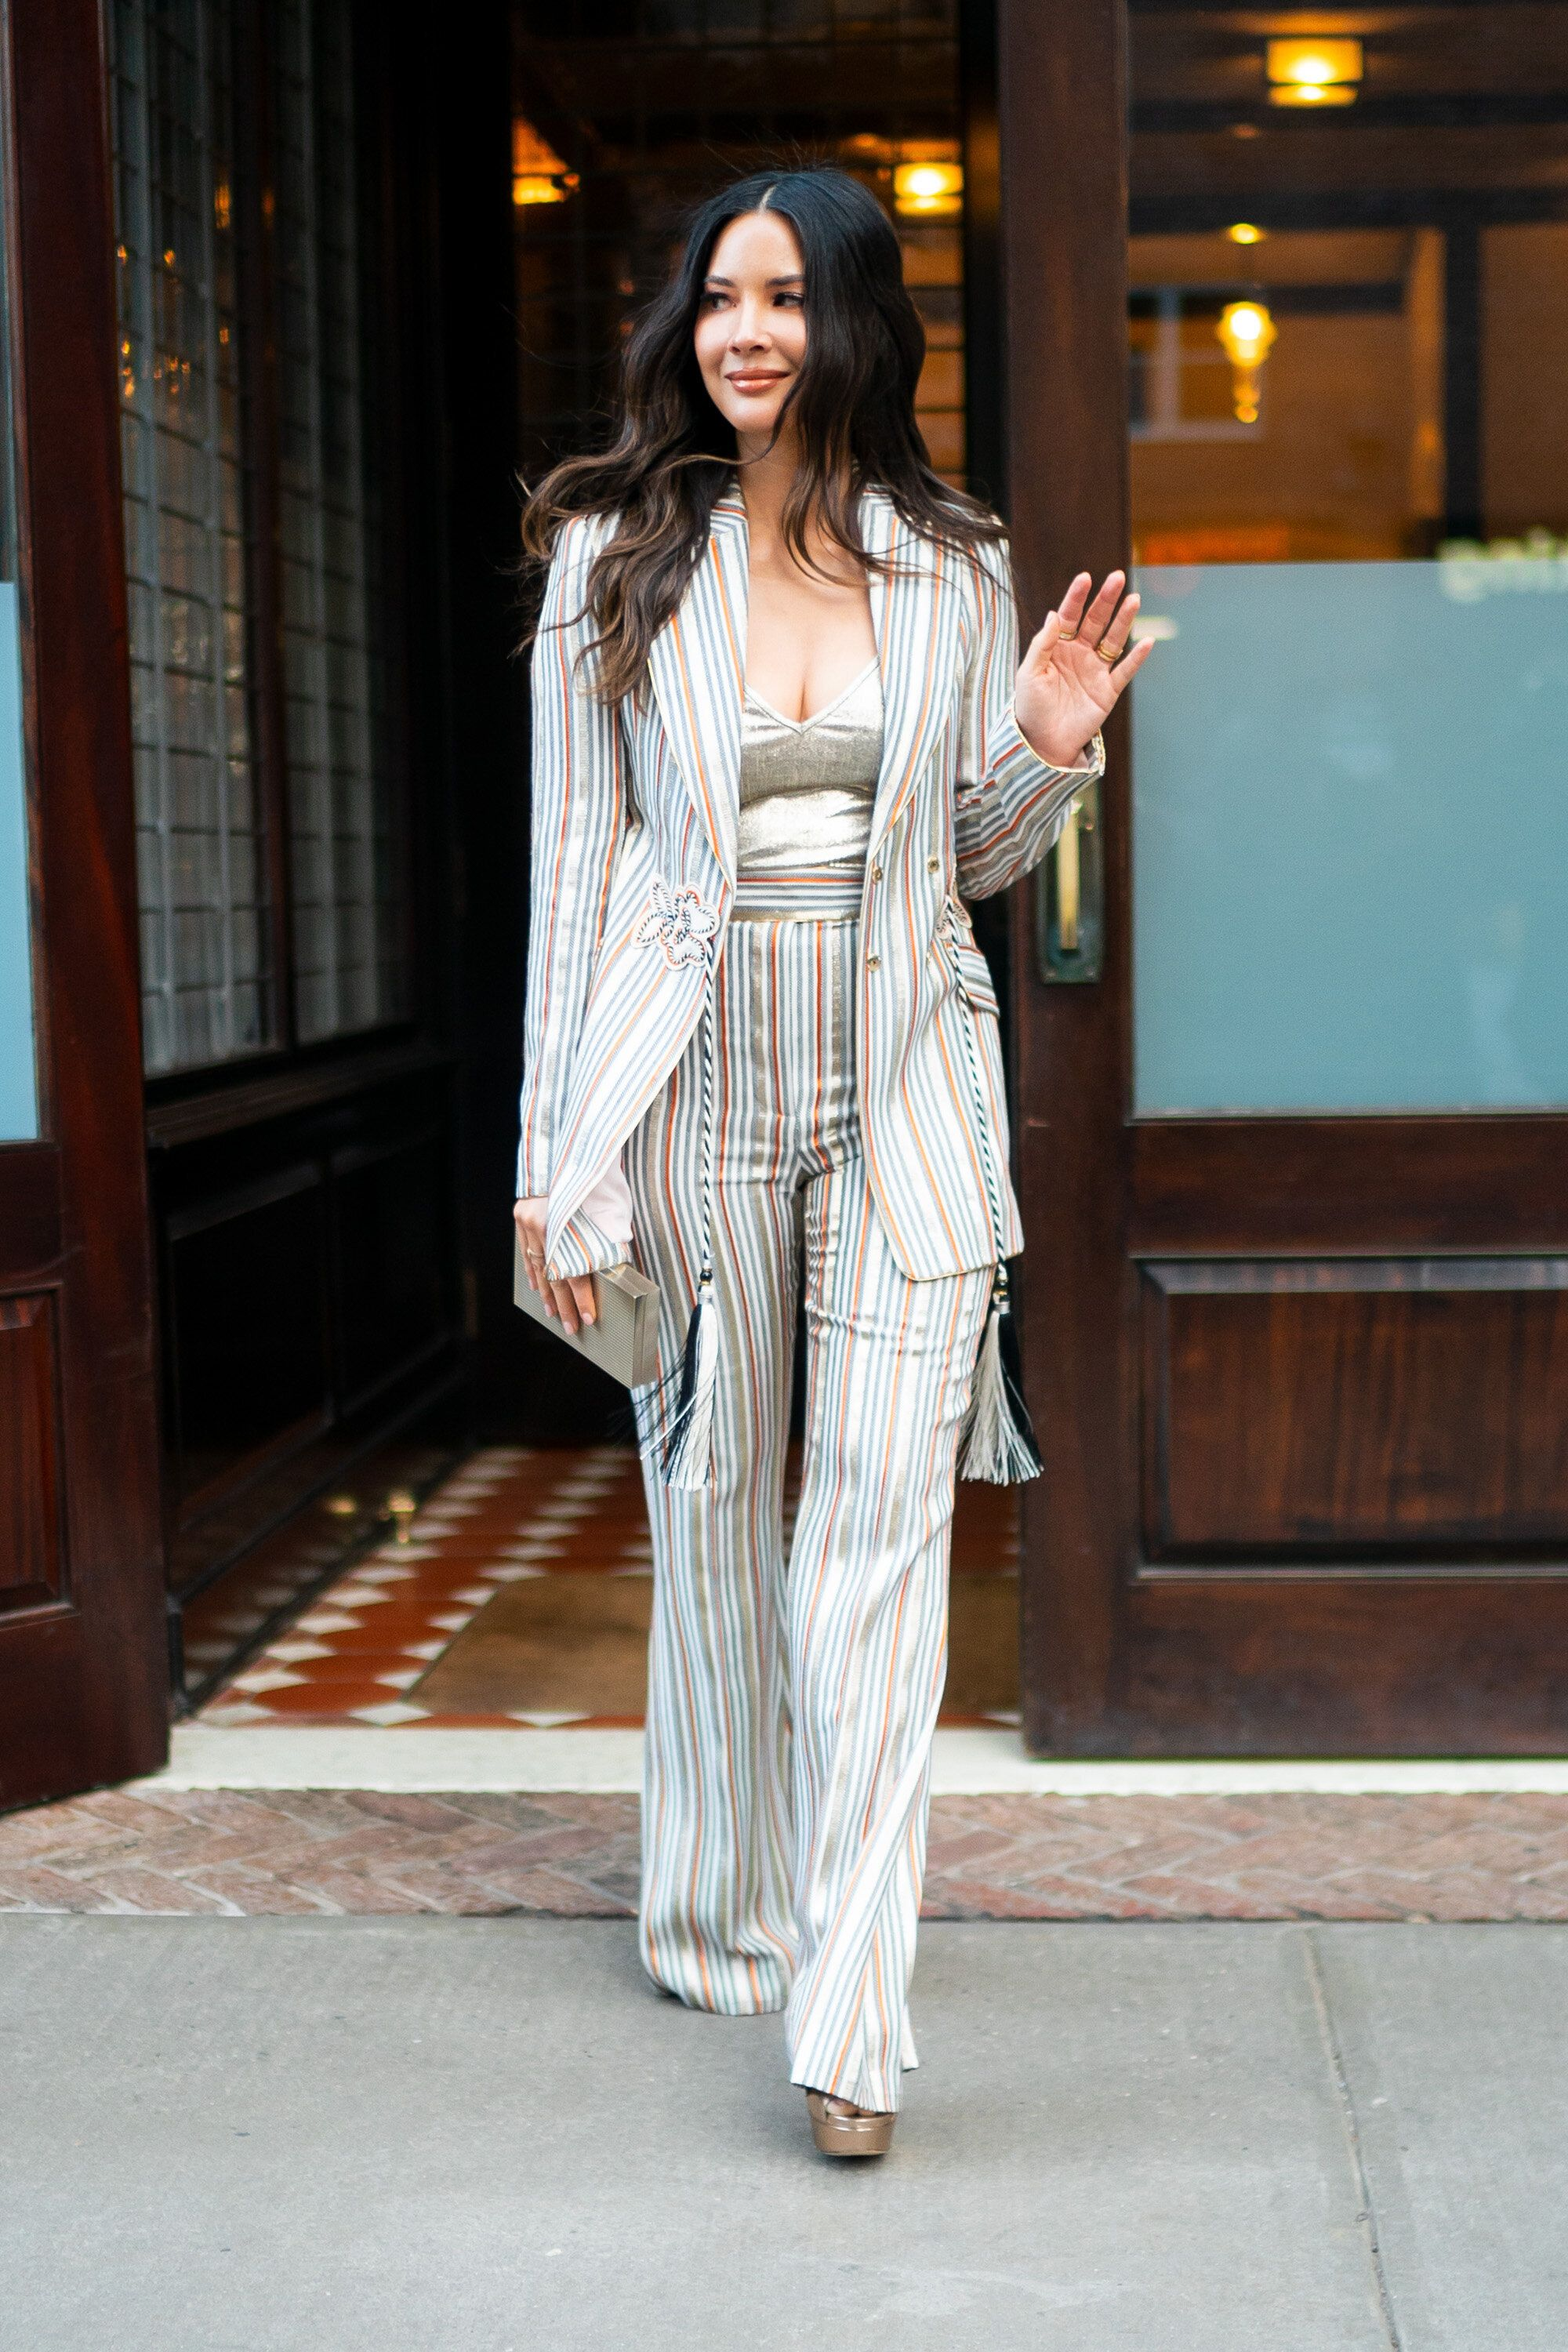 Olivia Munn in a striped suit that recently suffered the barbs of snarky fashion blog Go Fug Yourself.